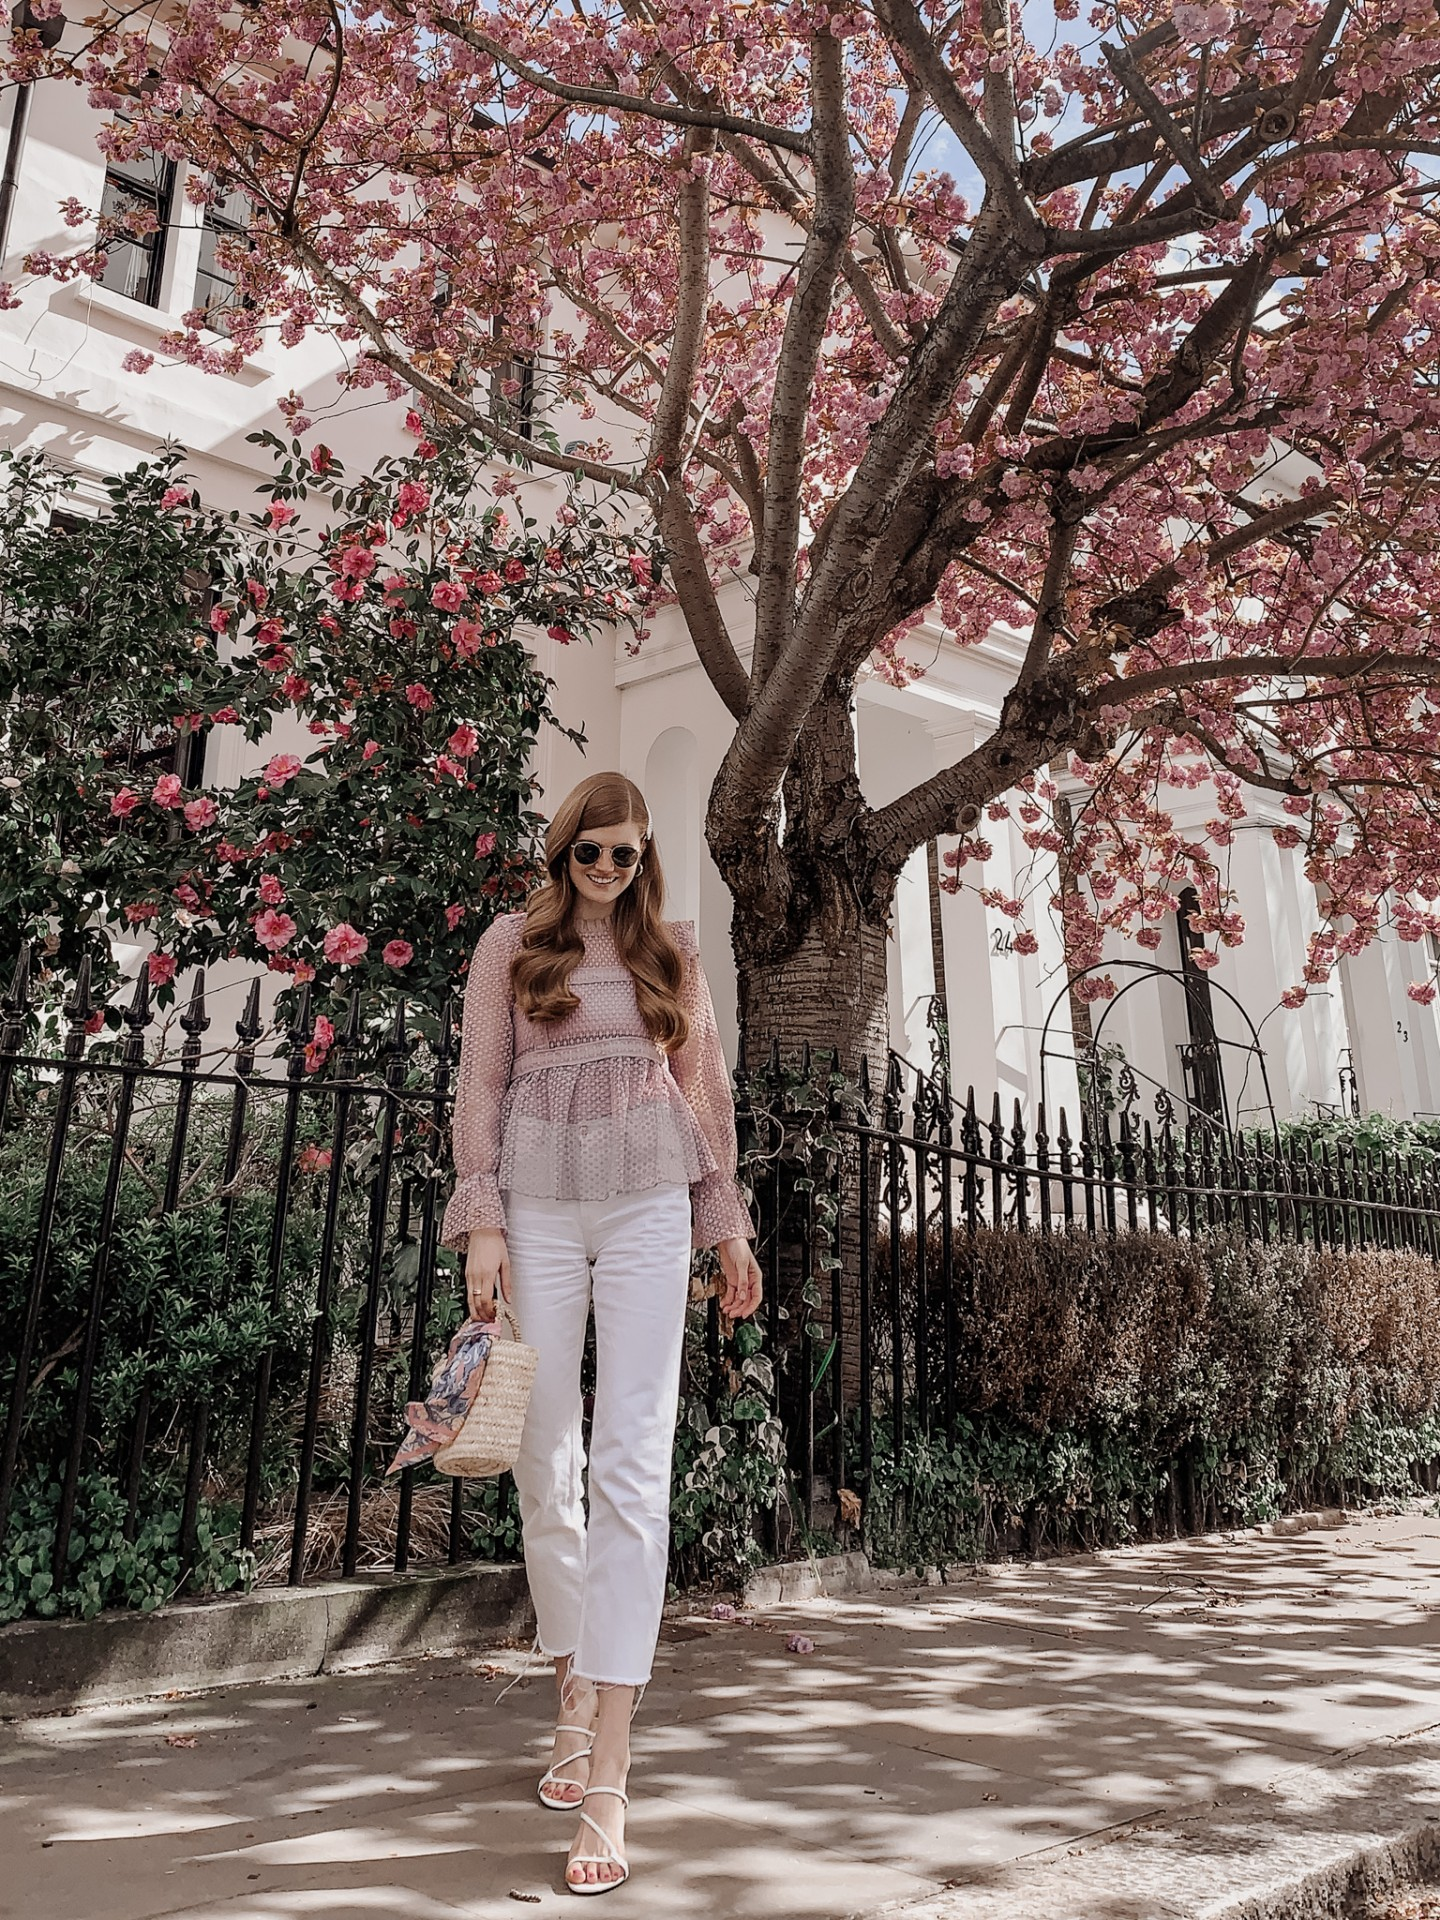 Lifestyle blogger Mollie Moore shares 5 spring looks to recreate this season